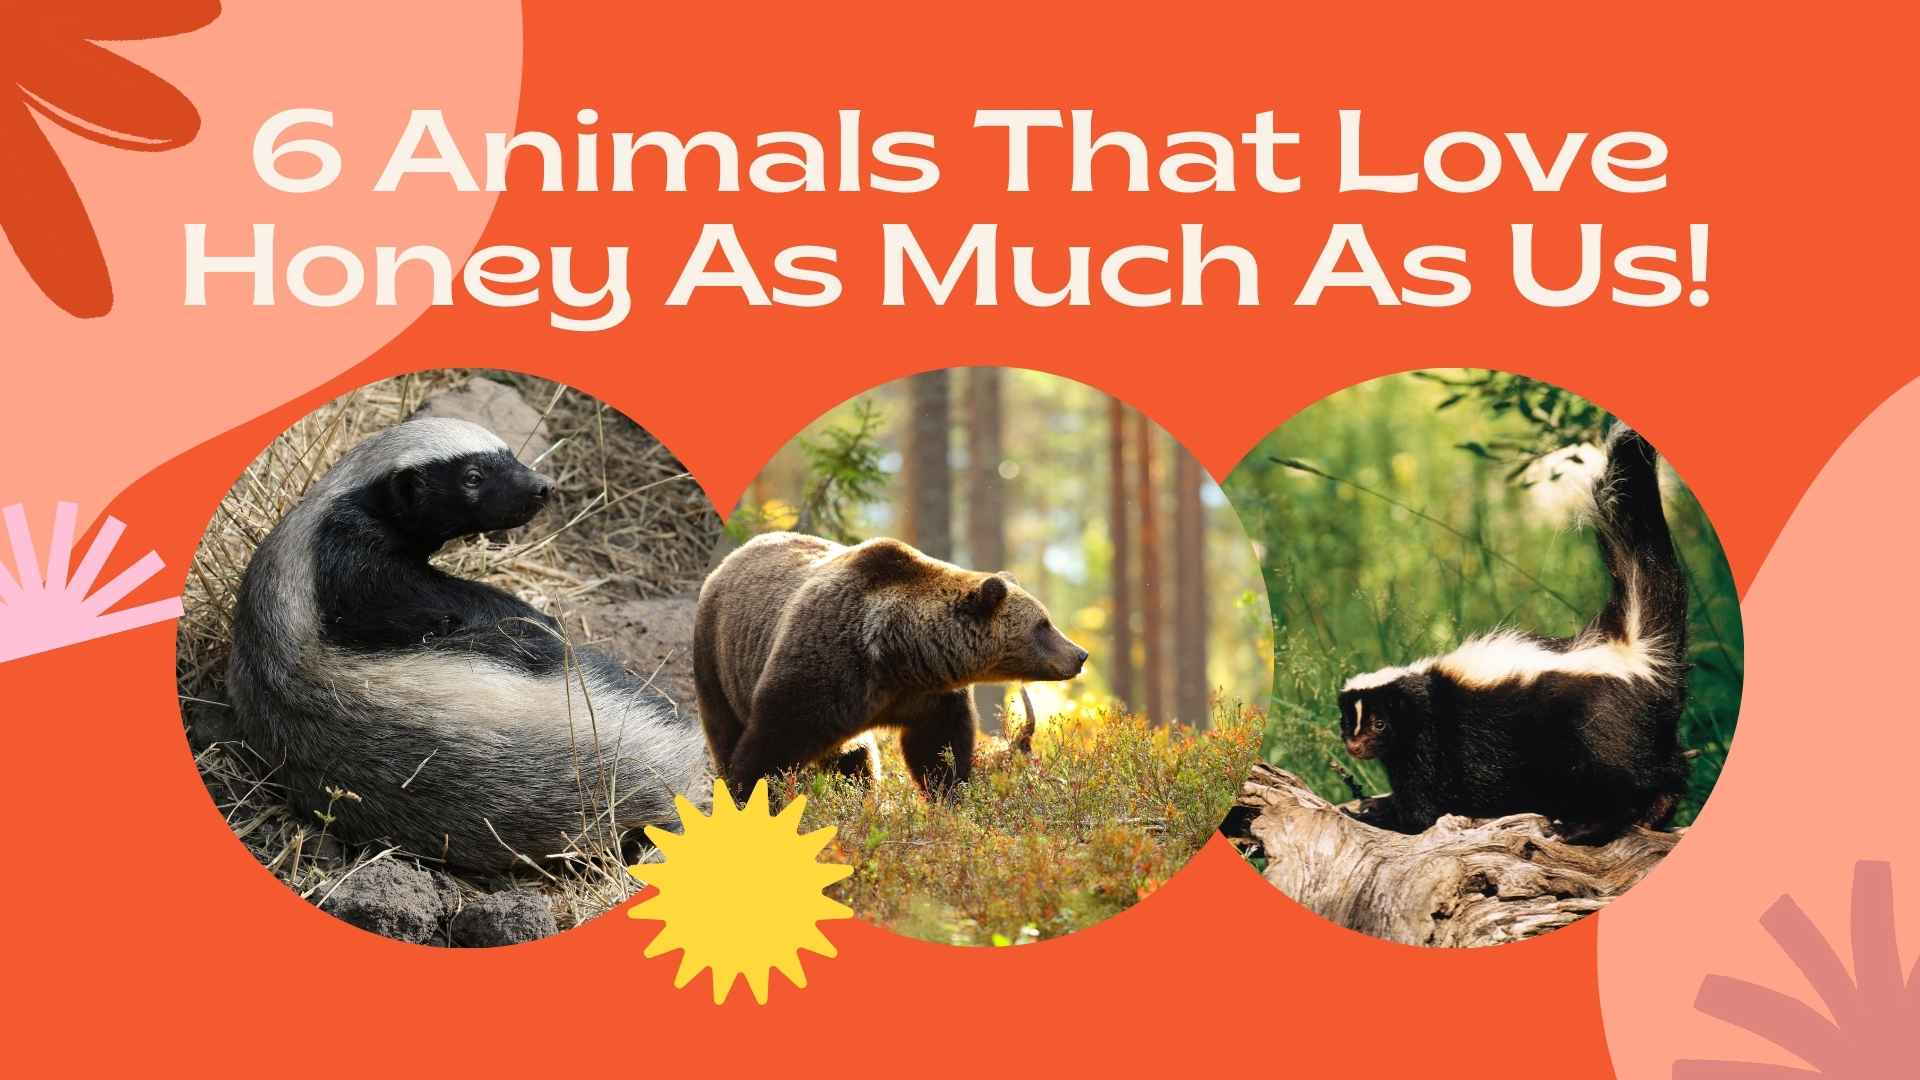 6 Animals That Love Honey As Much As Us!